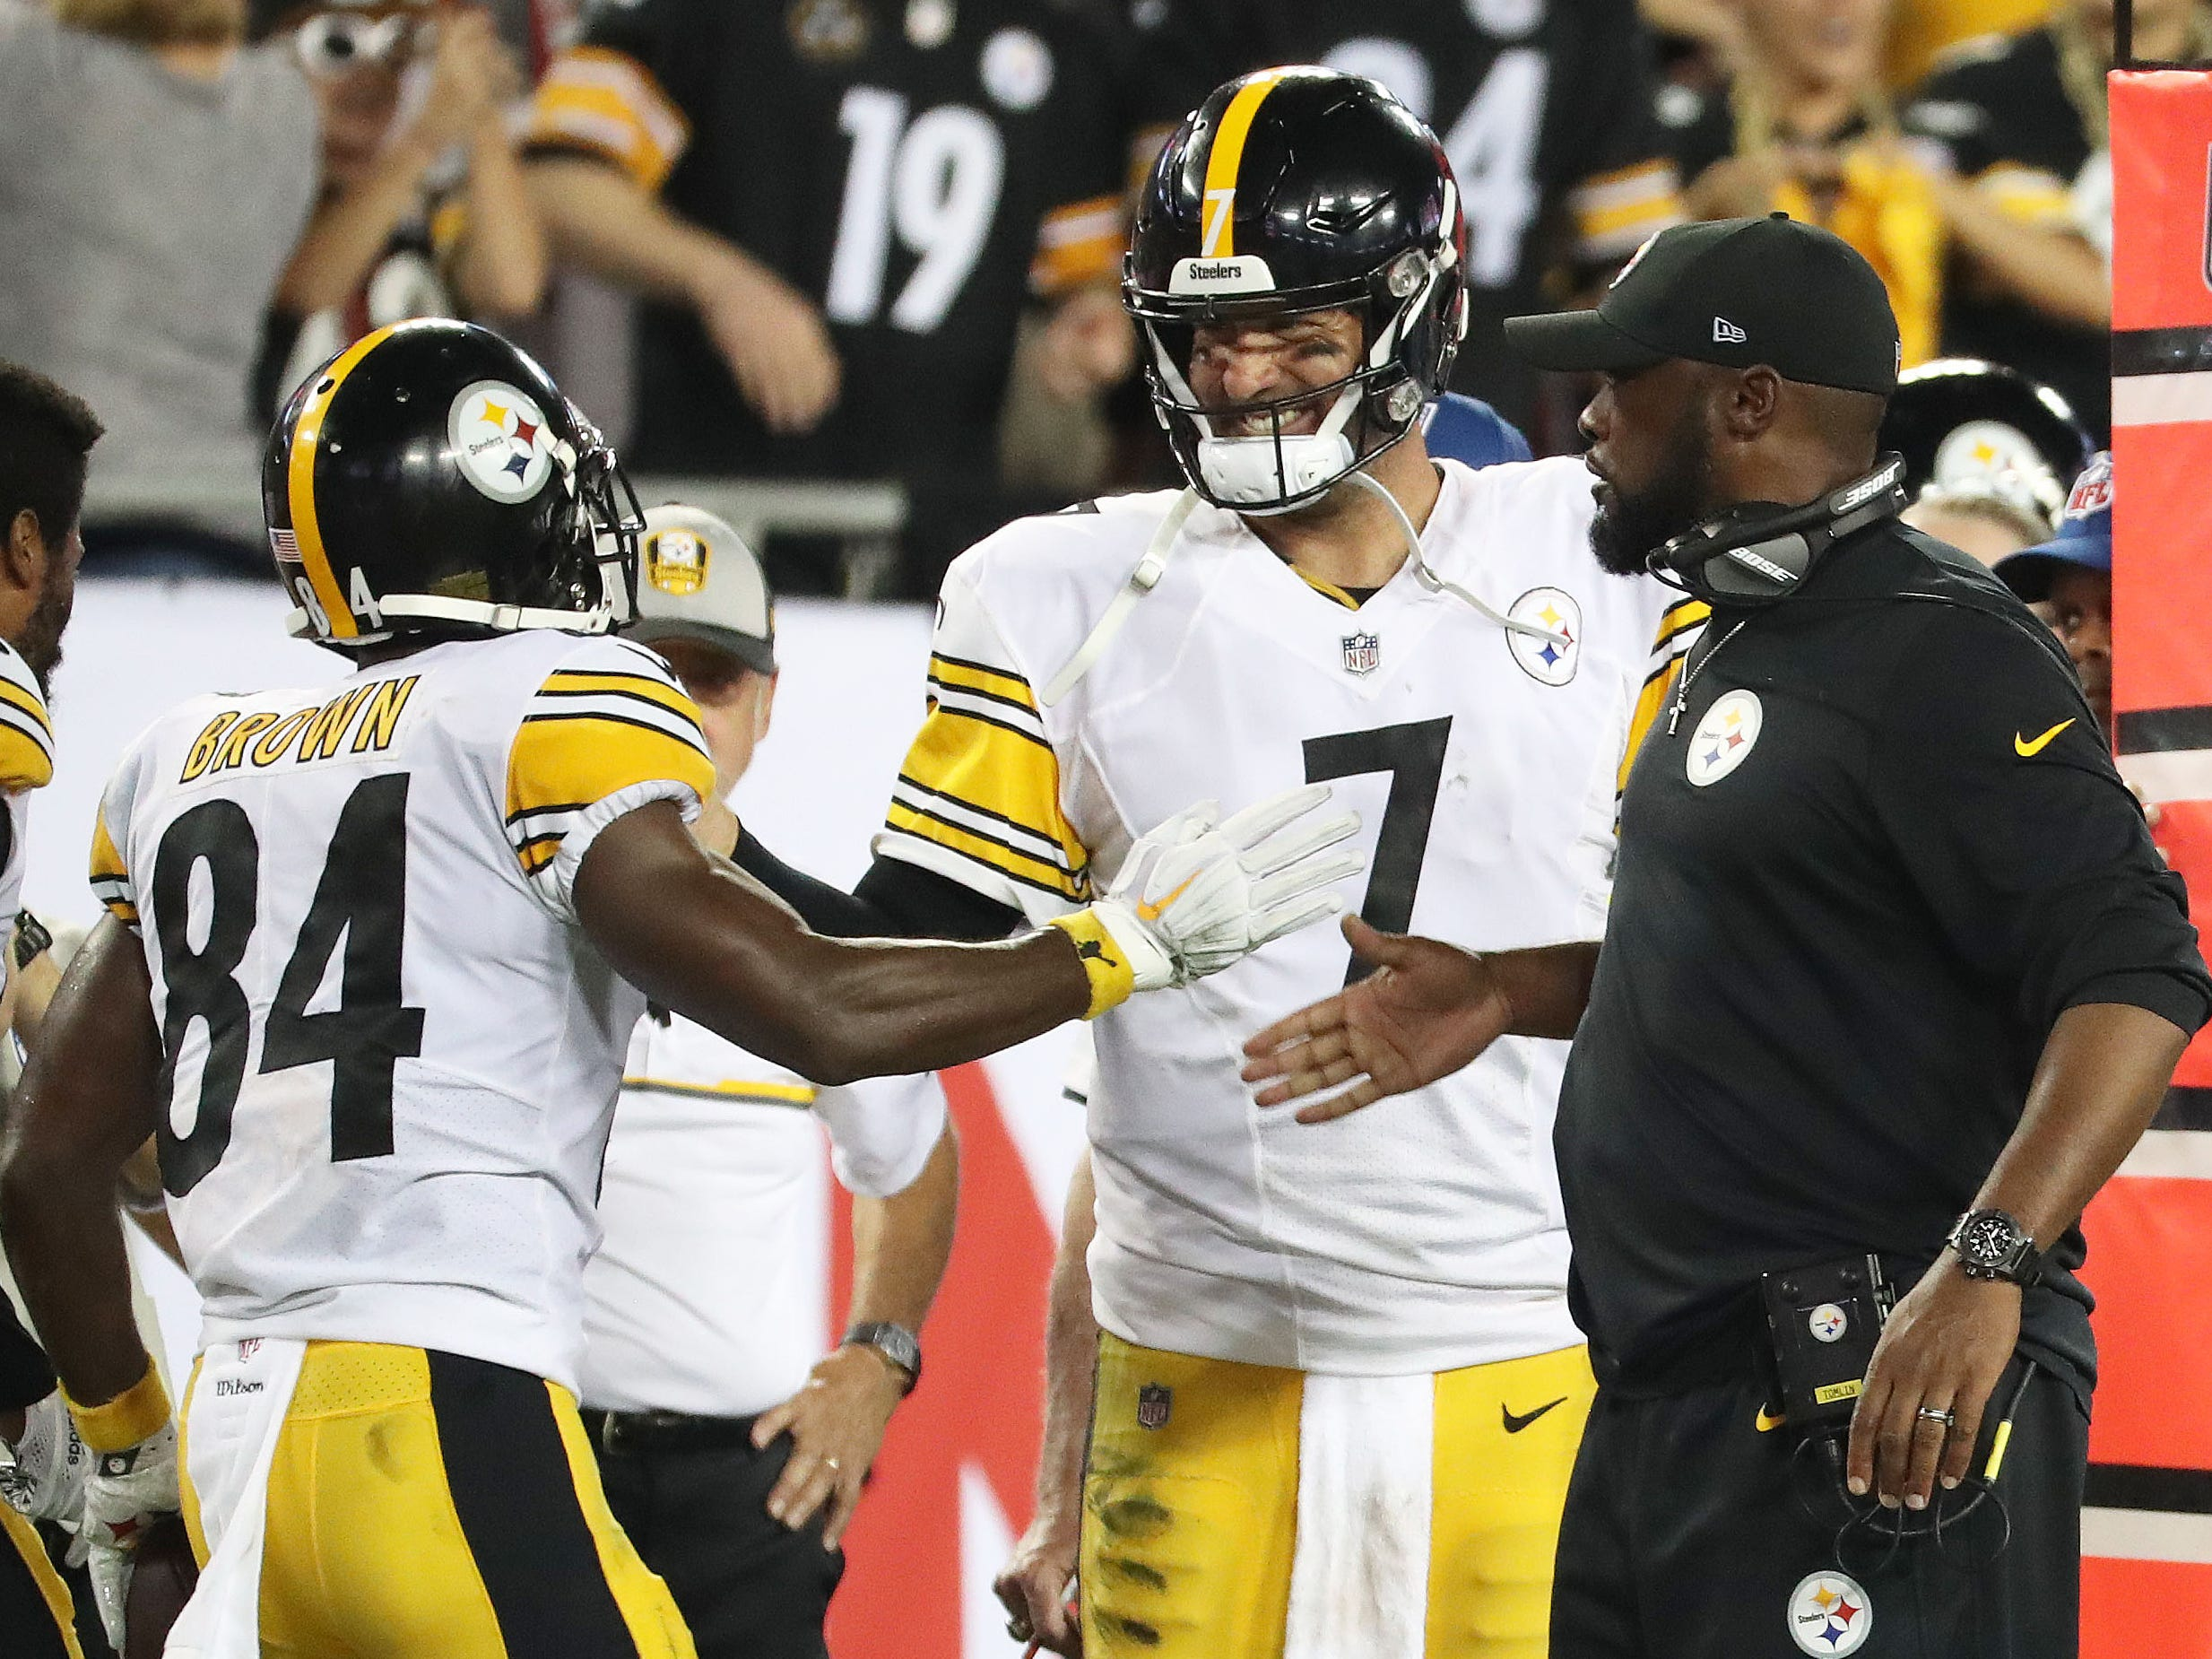 Steelers WR Antonio Brown (84) celebrates with QB Ben Roethlisberger (7) and head coach Mike Tomlin after scoring against Tampa Bay on Monday night.